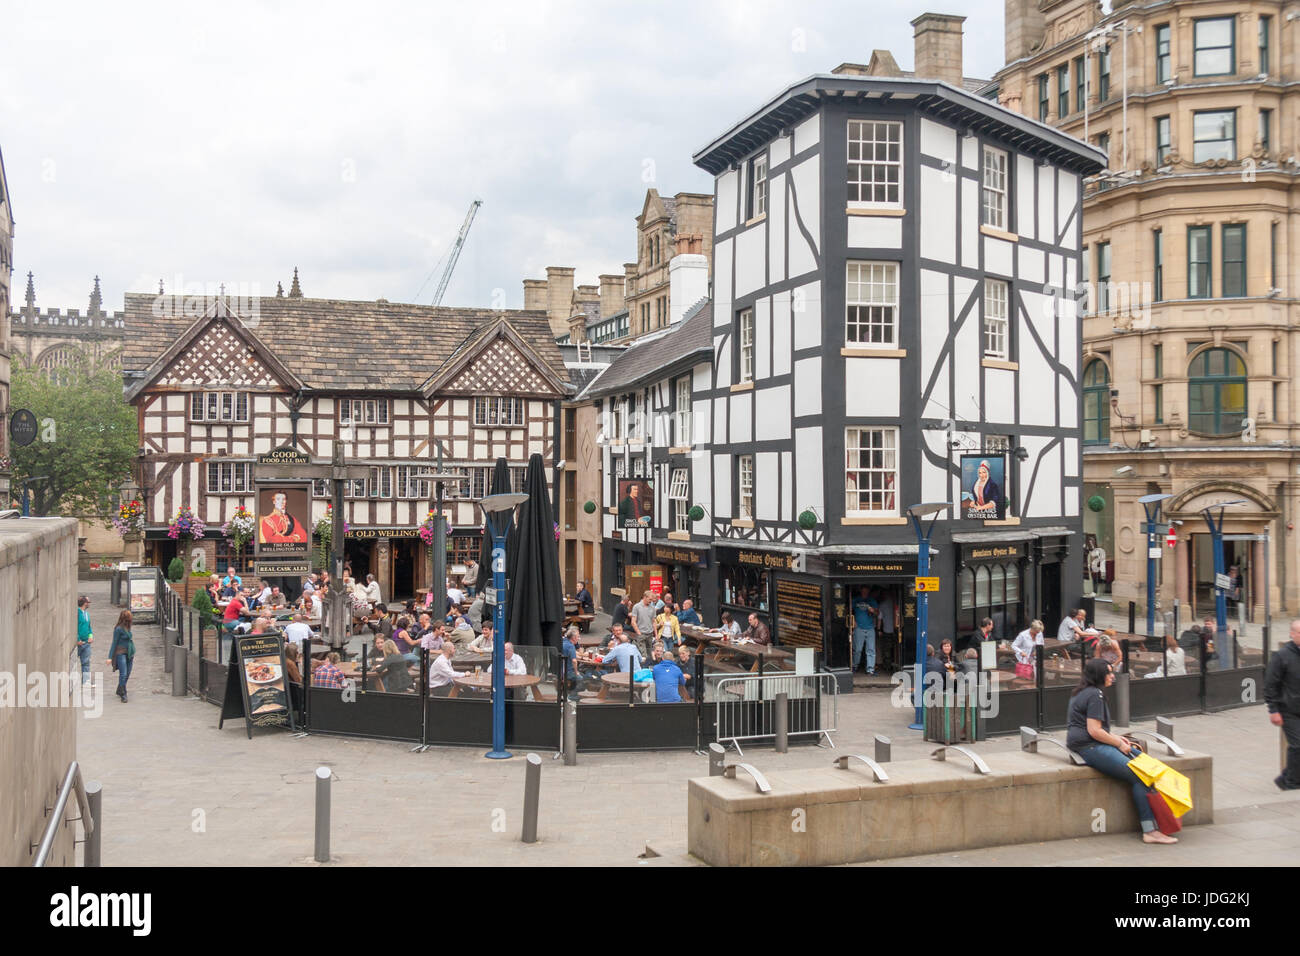 People eating and drinking outside The Old Wellington Inn and Sinclair's Oyster Bar, Manchester city centre, England, Stock Photo